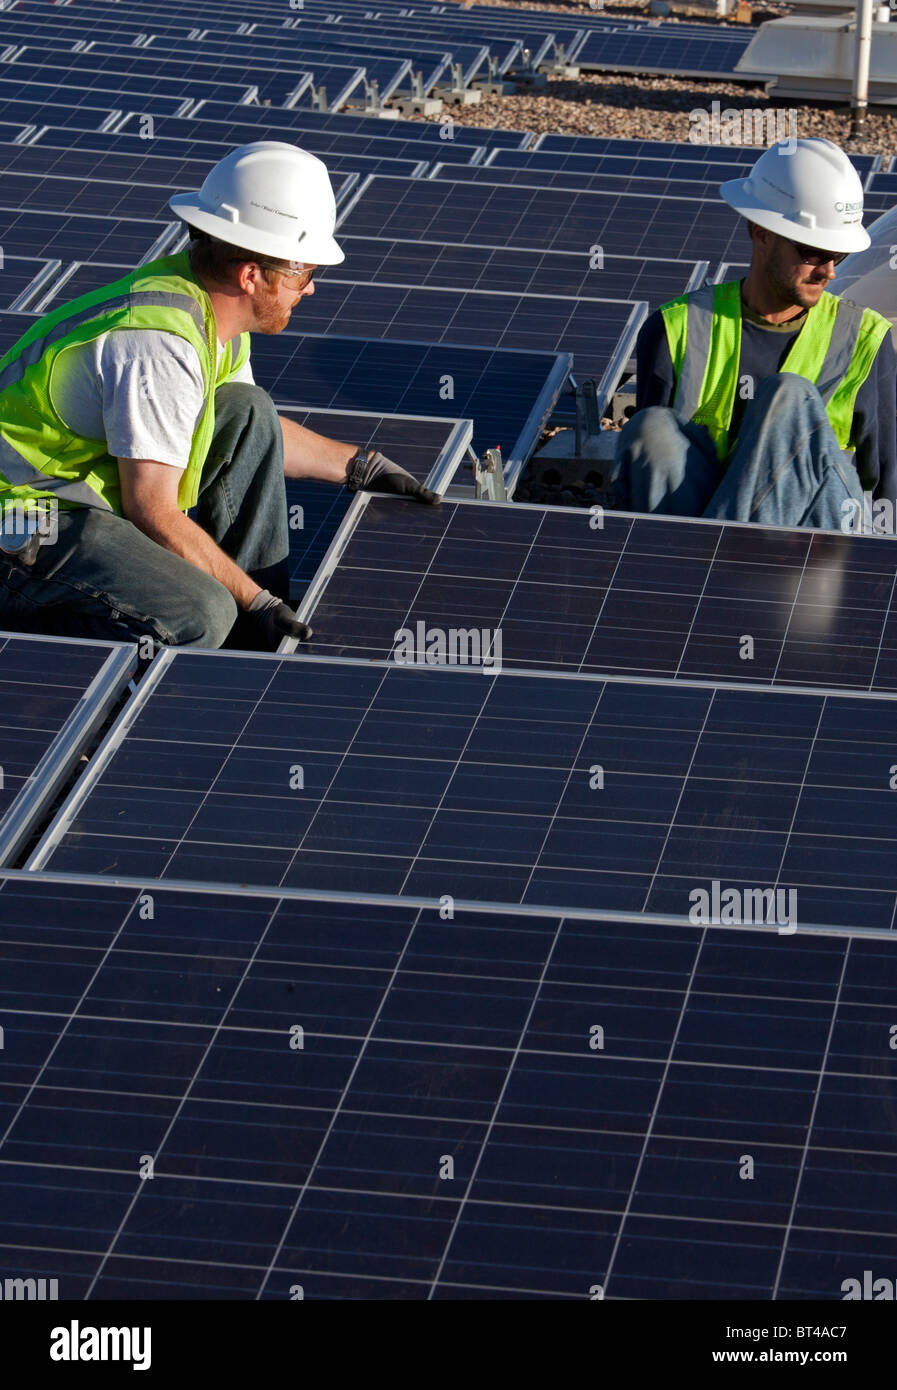 Denver, Colorado - Workers install solar photovoltaic panels on the roof of Harrington Elementary School. - Stock Image